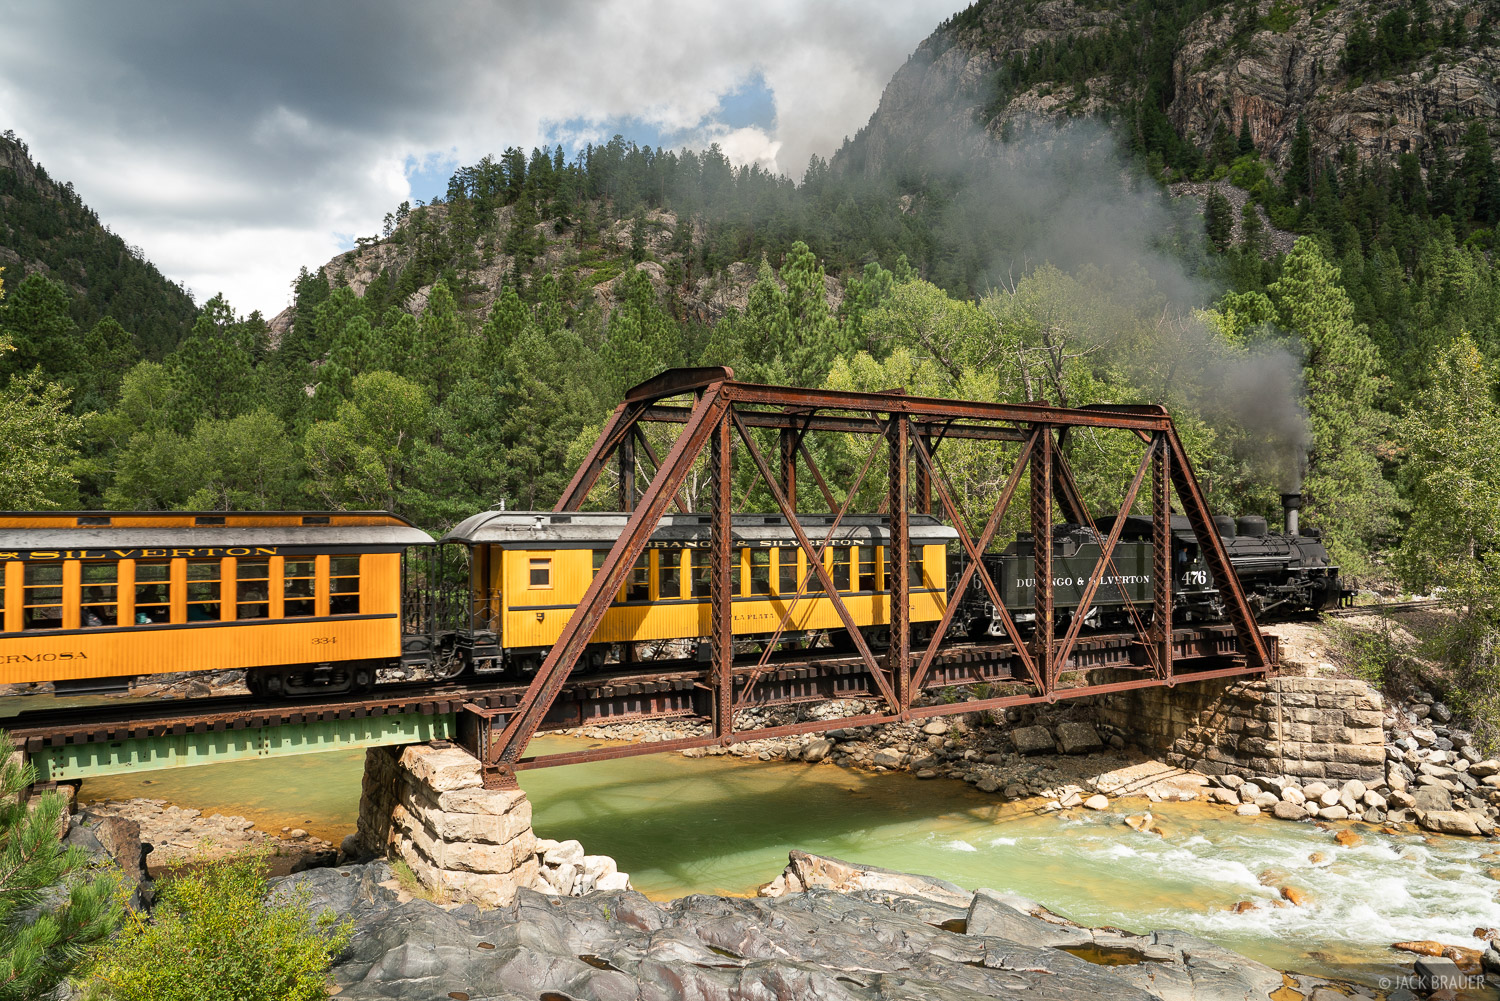 Animas River, Colorado, Needle Mountains, San Juan Mountains, Weminuche Wilderness, train, photo